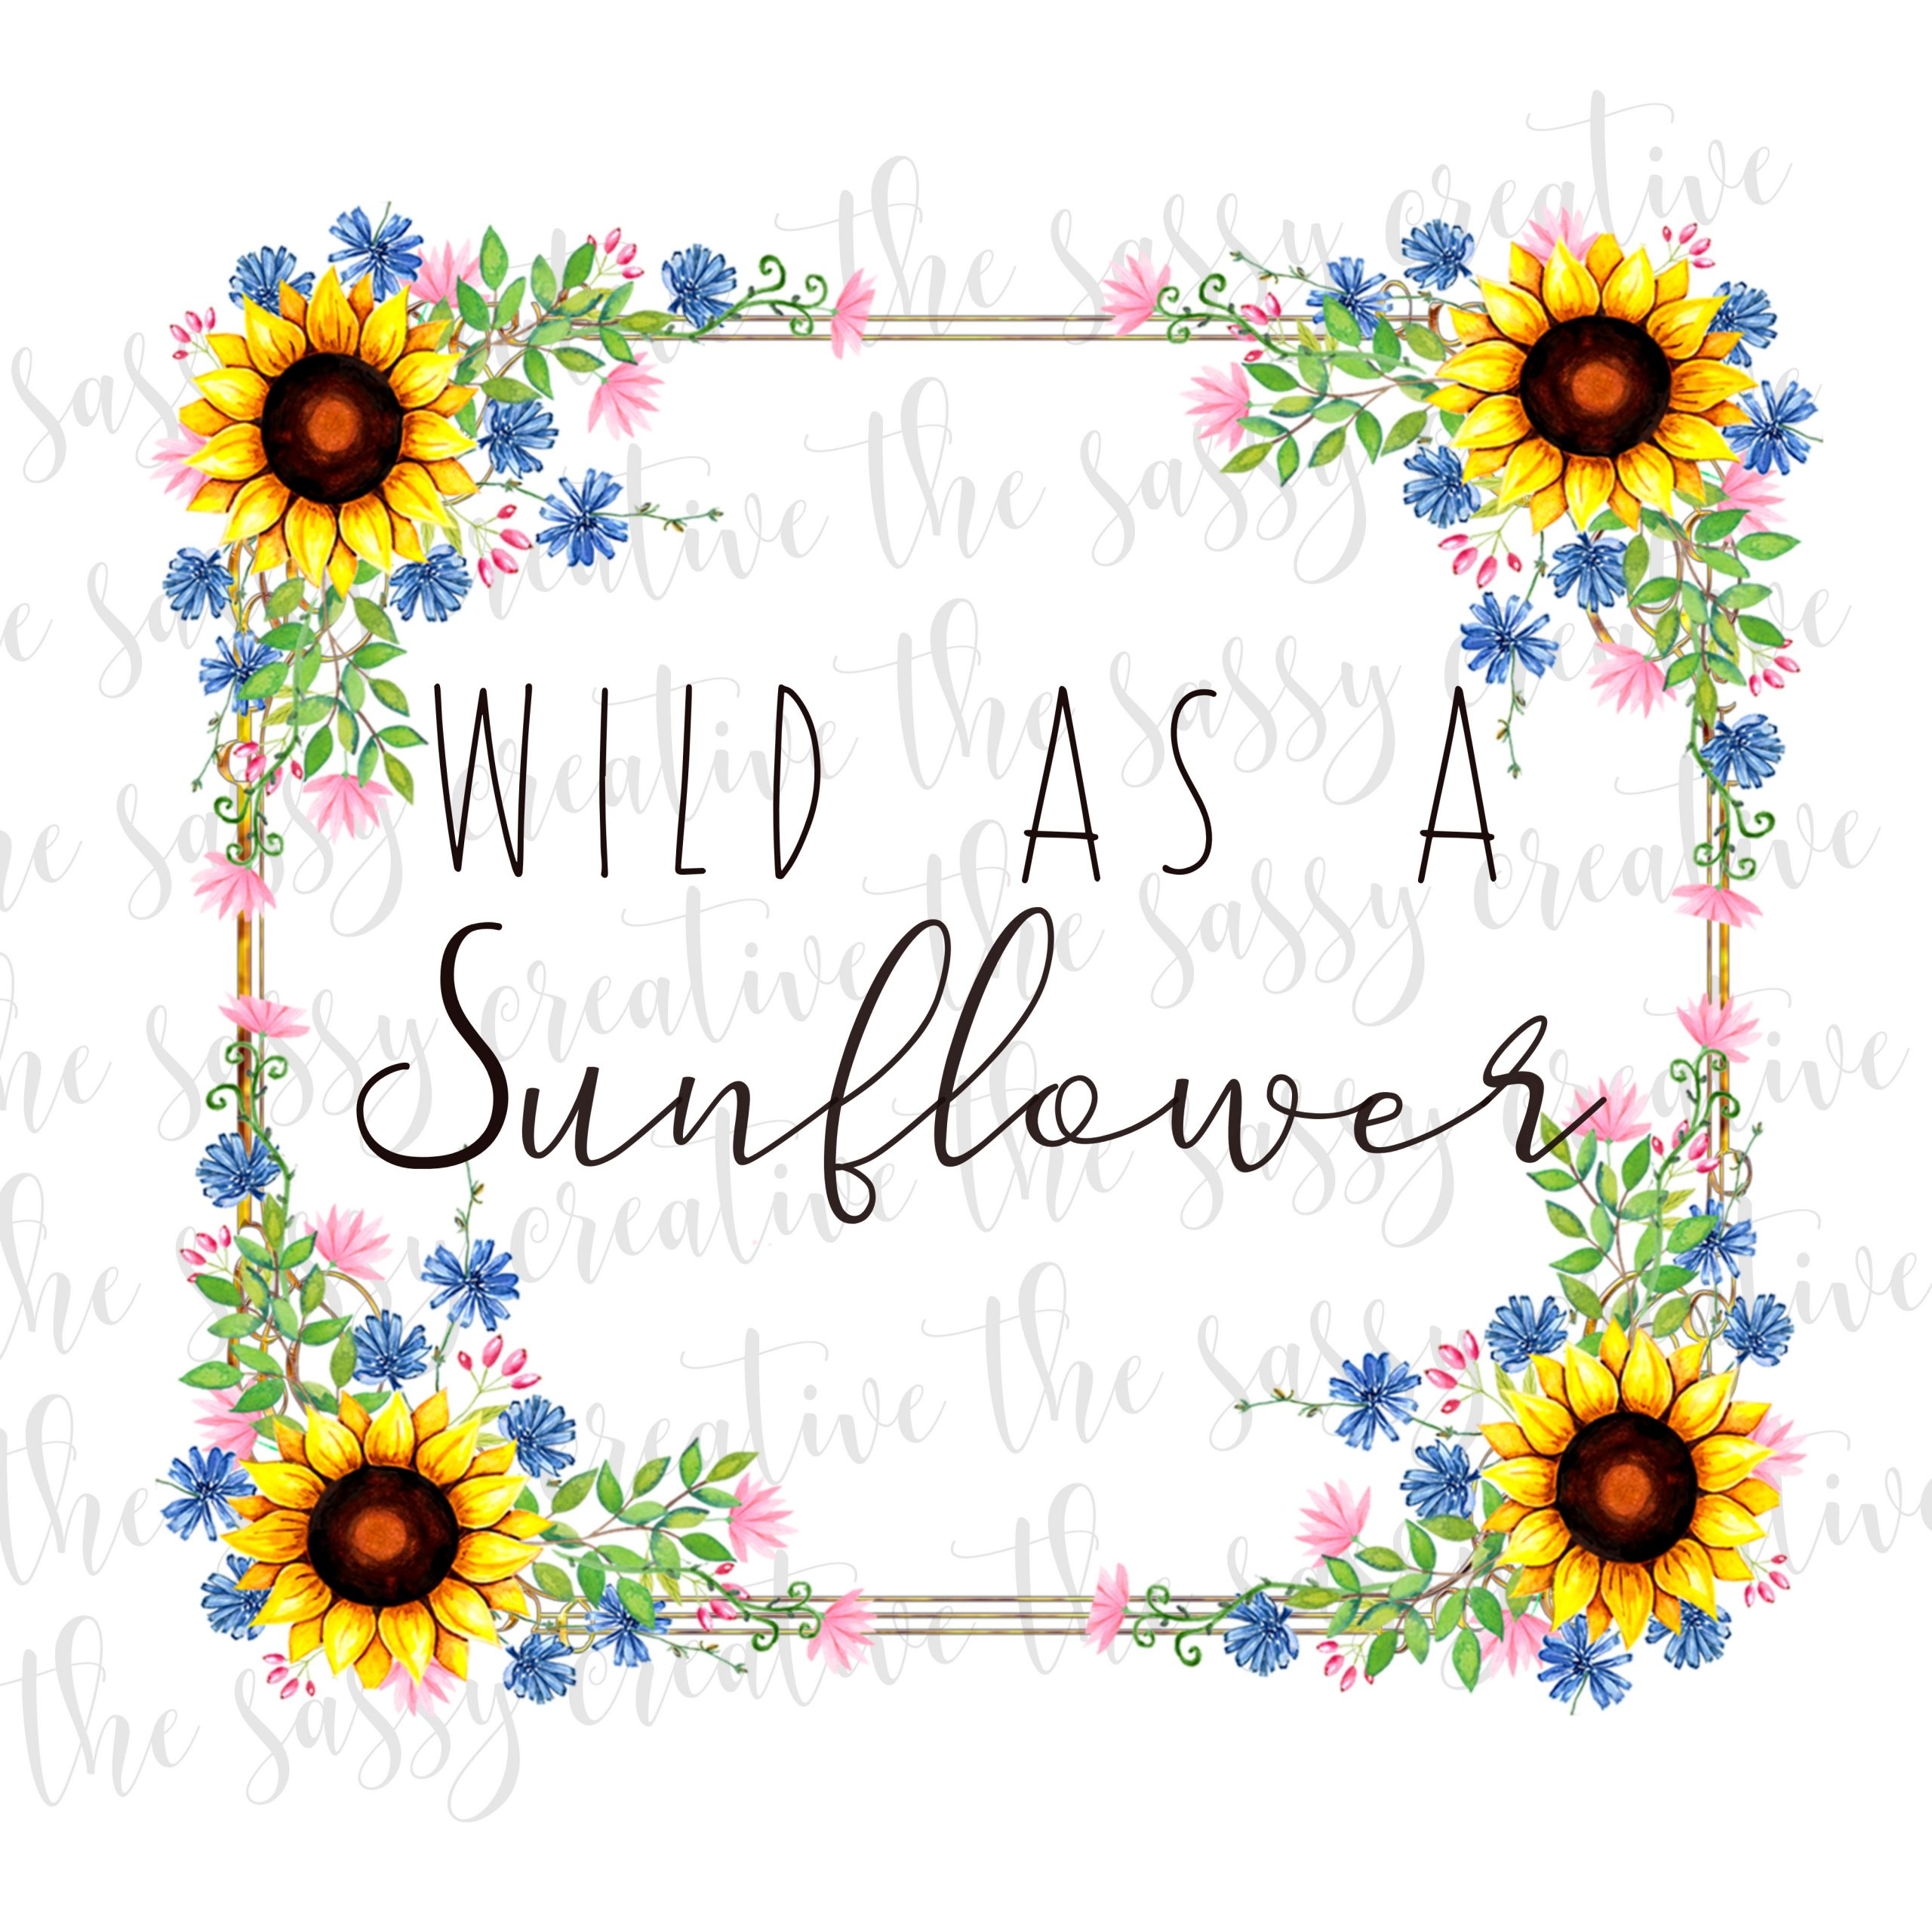 Wildasasunflowercover